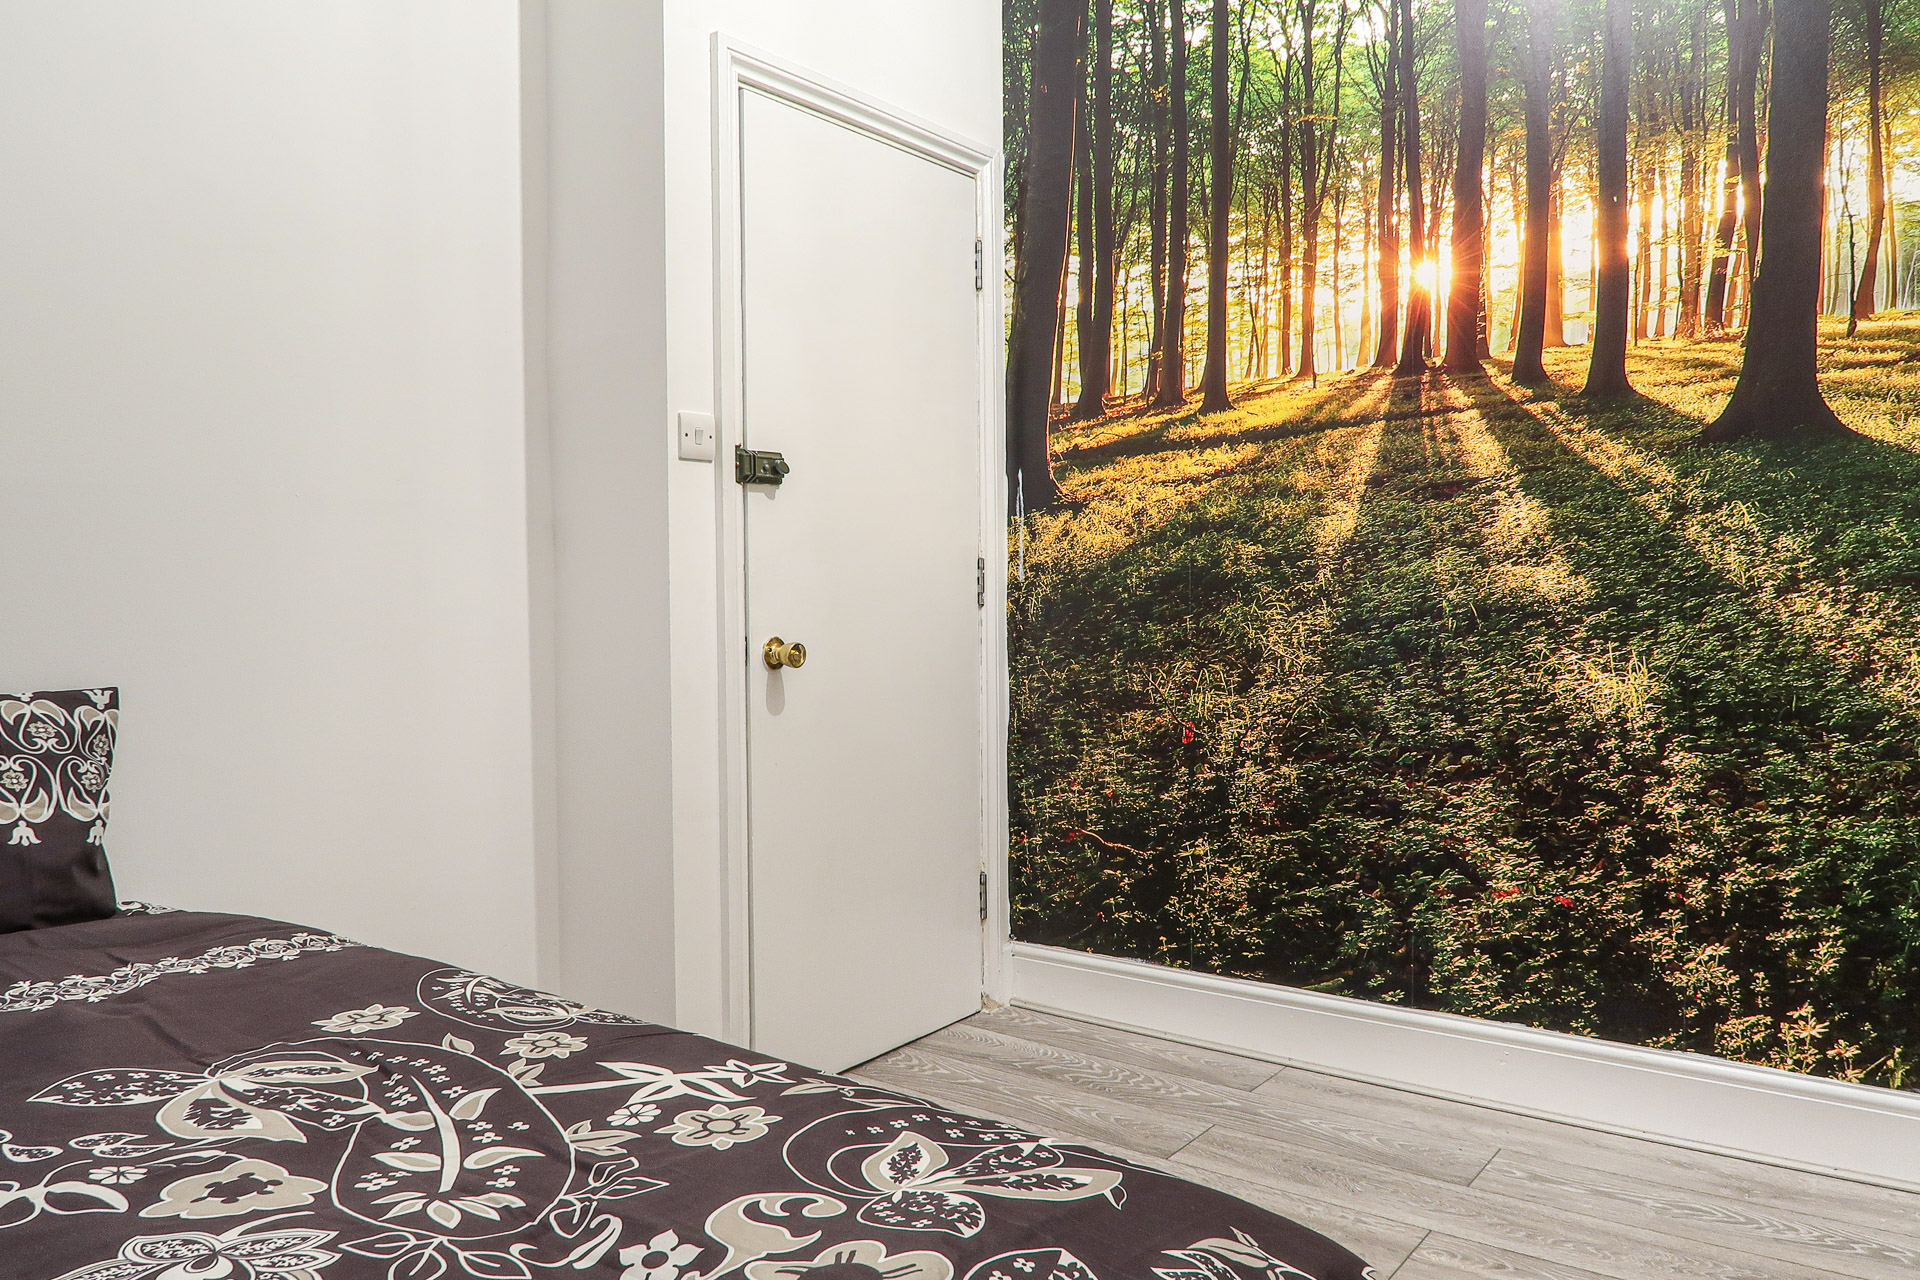 SIDNEY STREET - B - DELUXE GUEST ROOM 3 photo 20156602